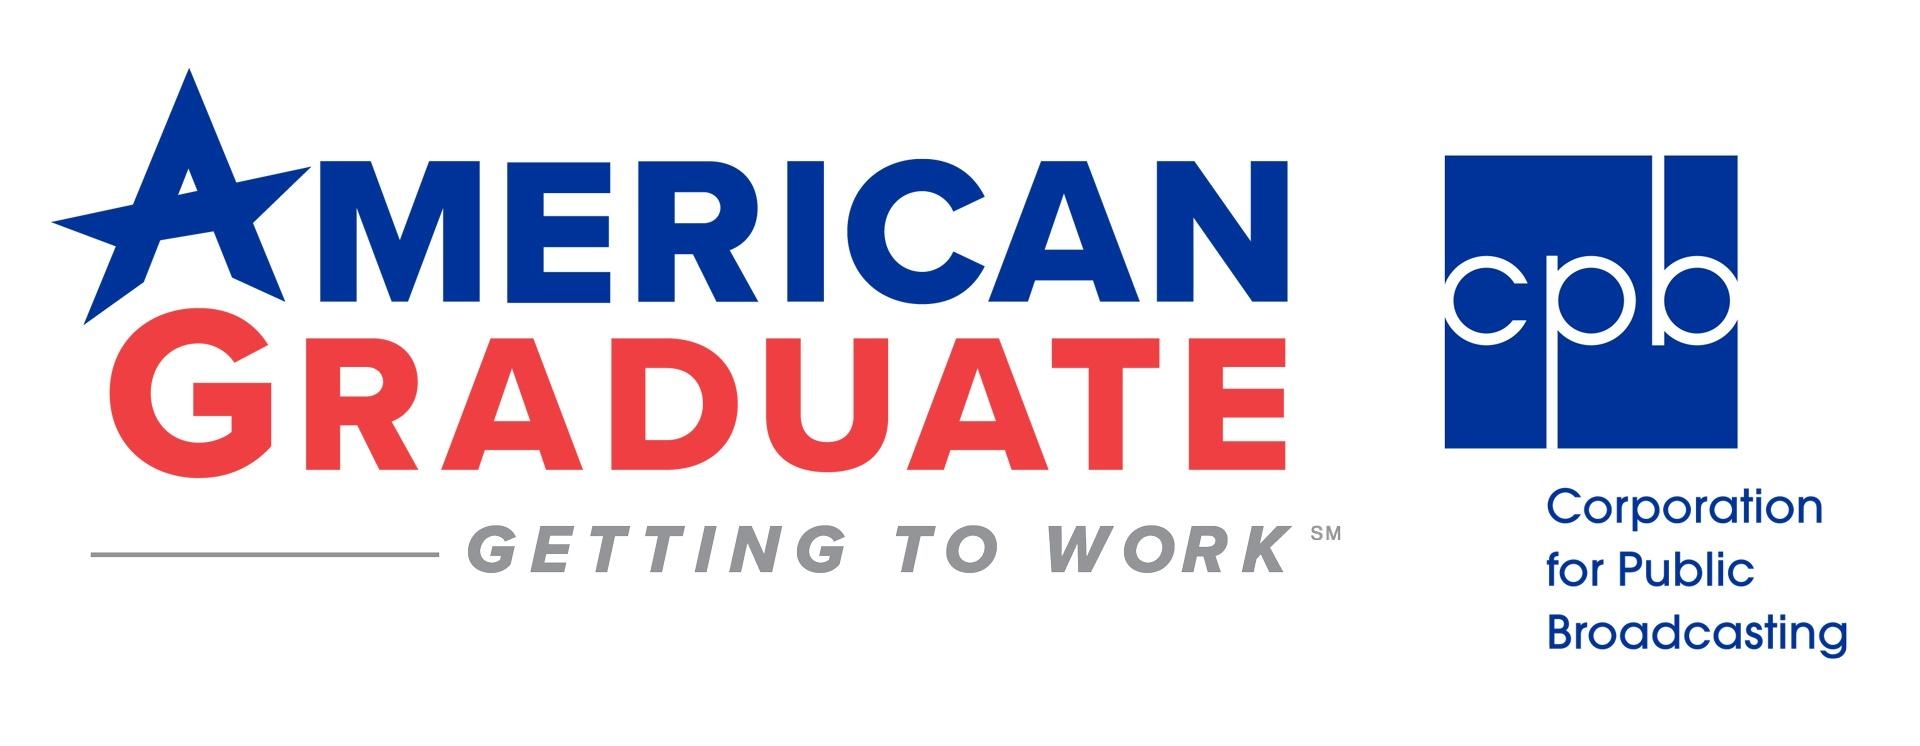 American Graduate - Getting to Work